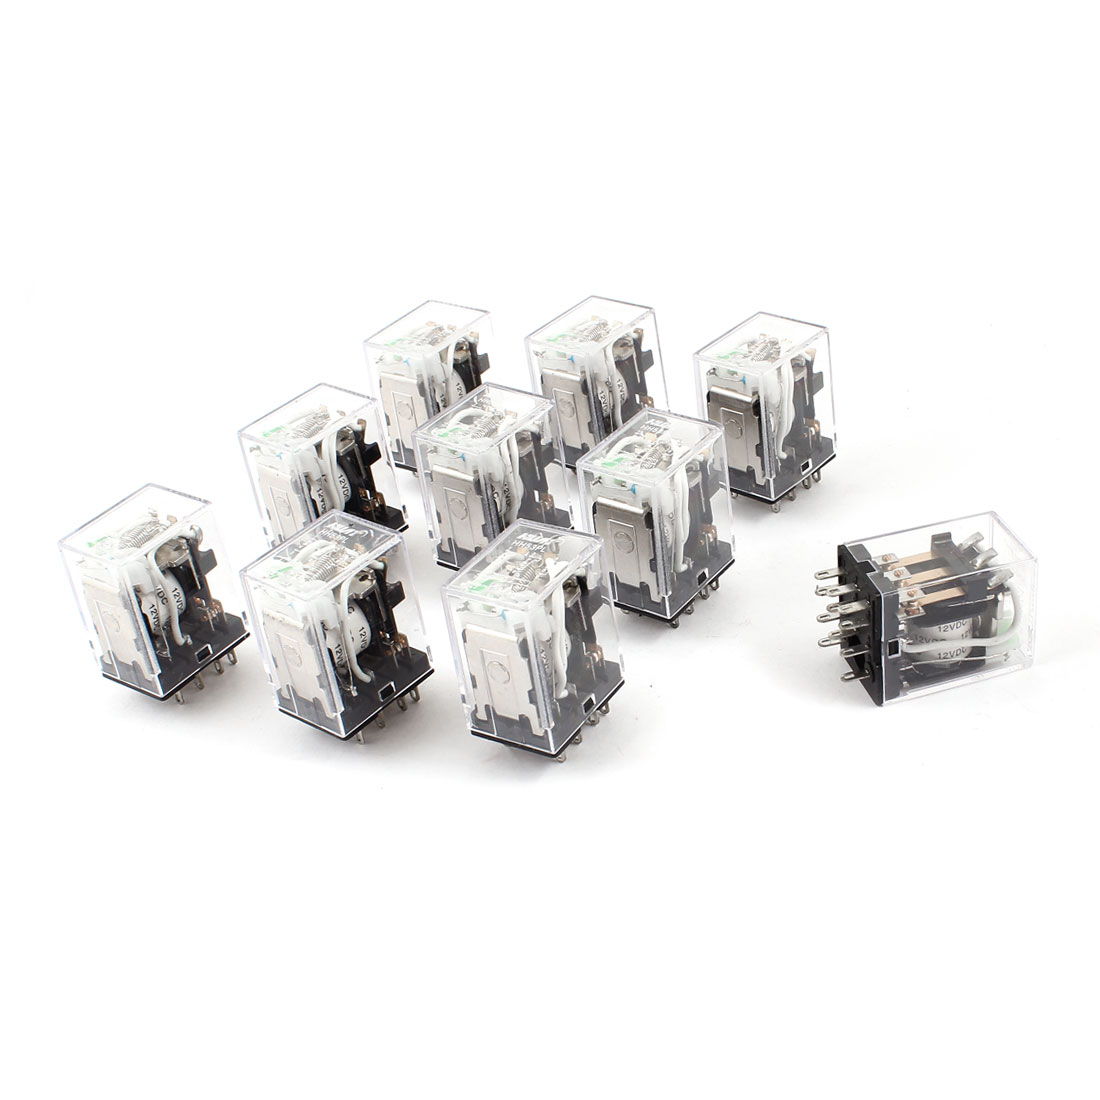 HH53PL DC 12V Coil 11 Pins 3PDT Green LED Light Electromagnetic Relay 10 Pcs